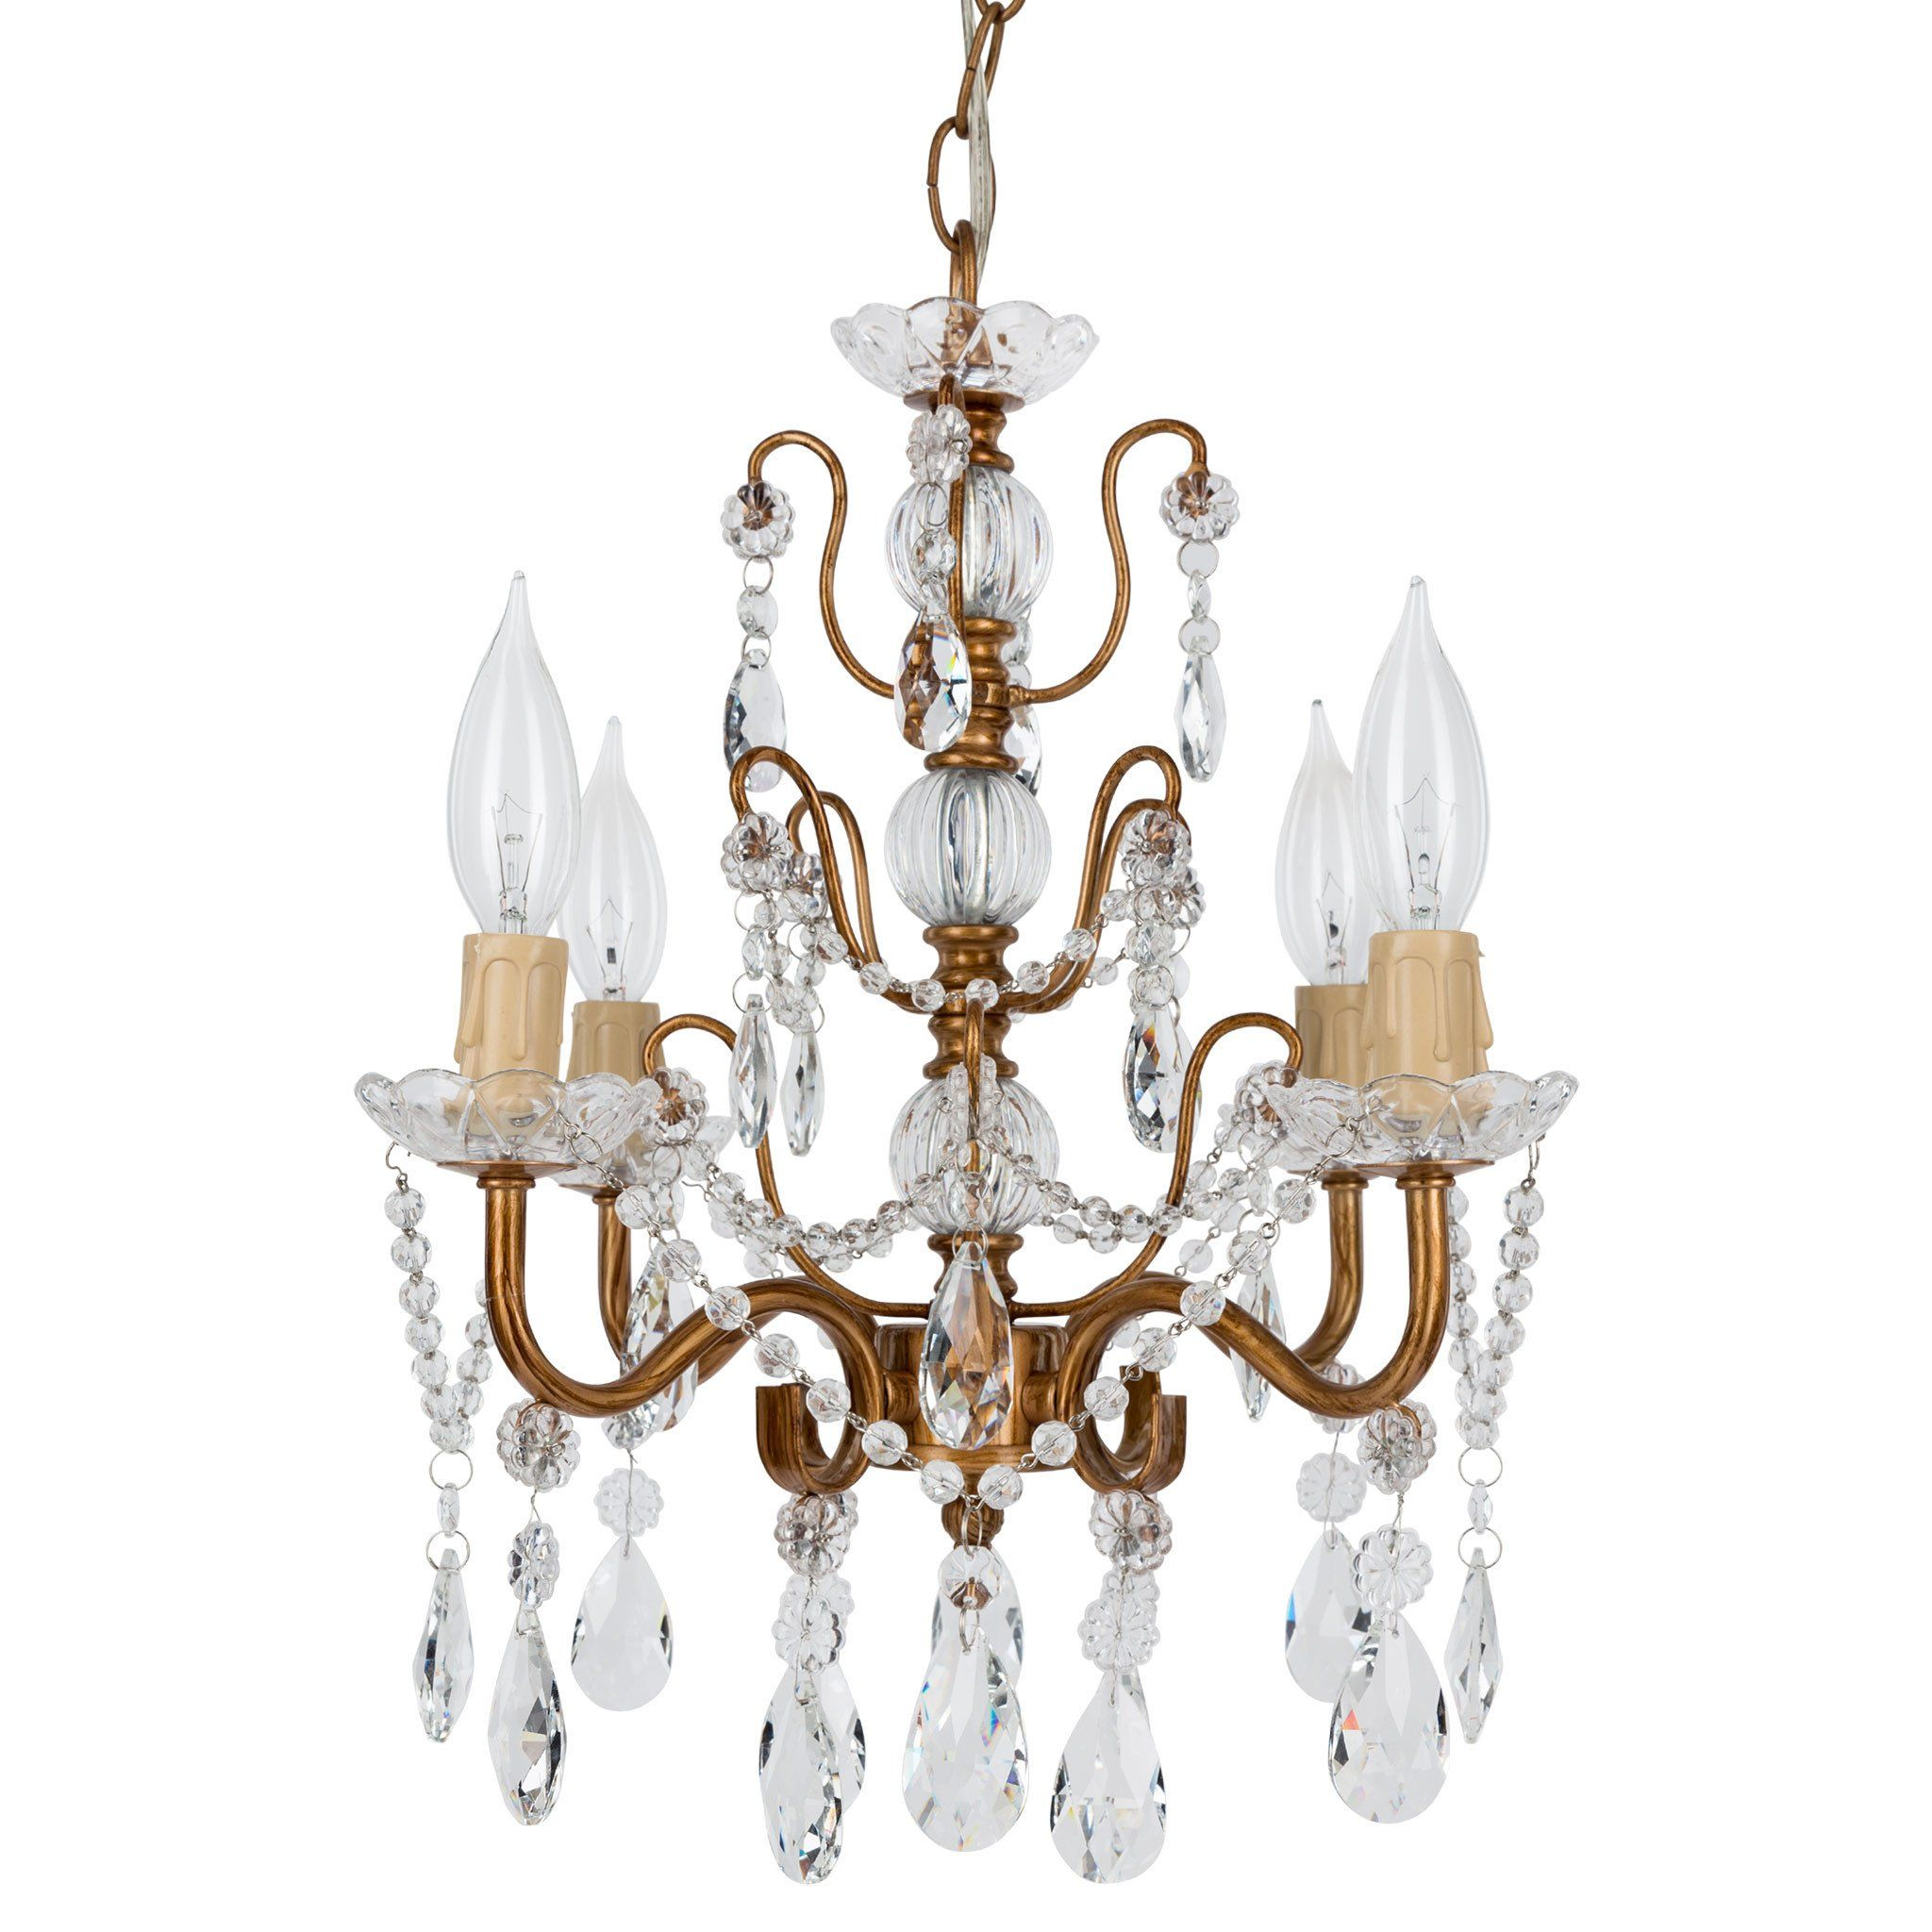 4 Light Shabby Chic Crystal Plug In Chandelier Gold Plug In